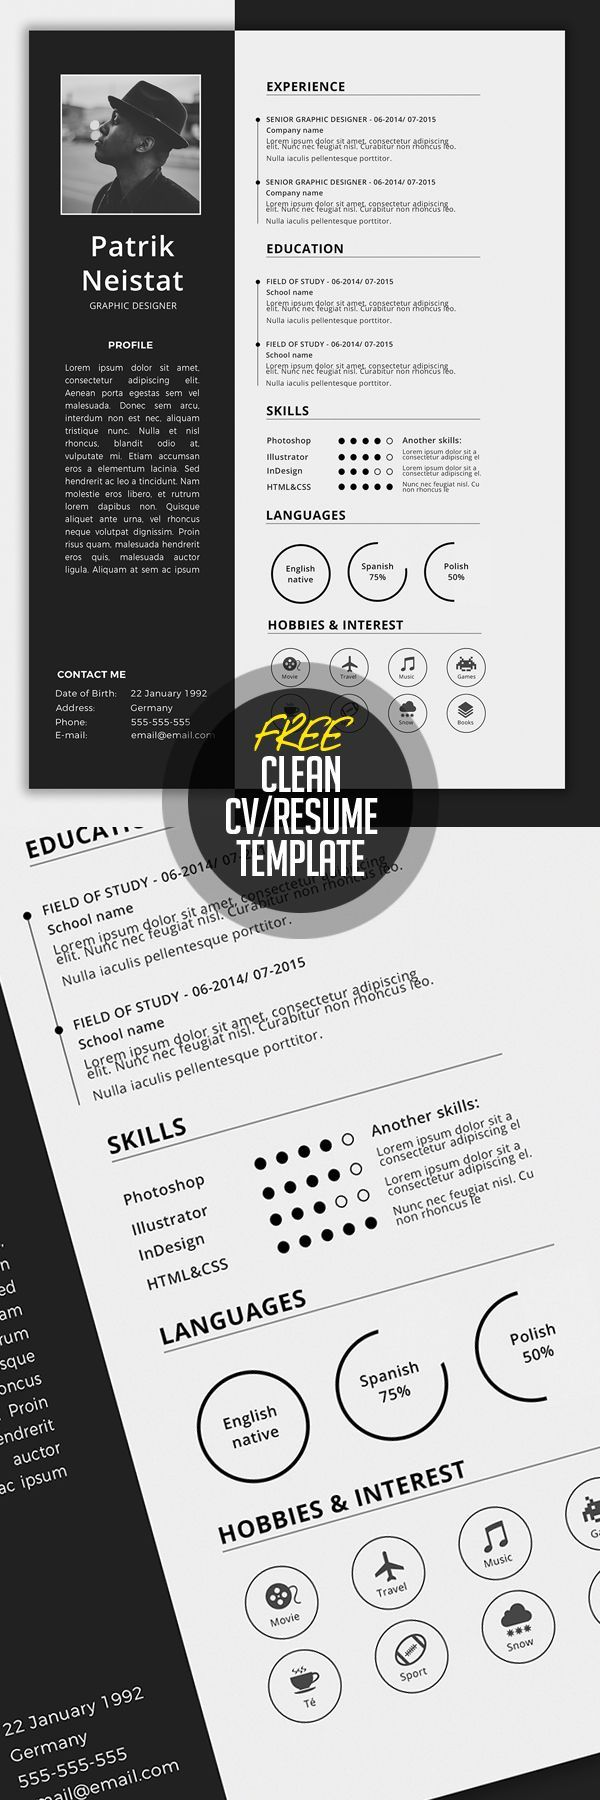 11 best CV formats images on Pinterest | Resume templates, Resume ...